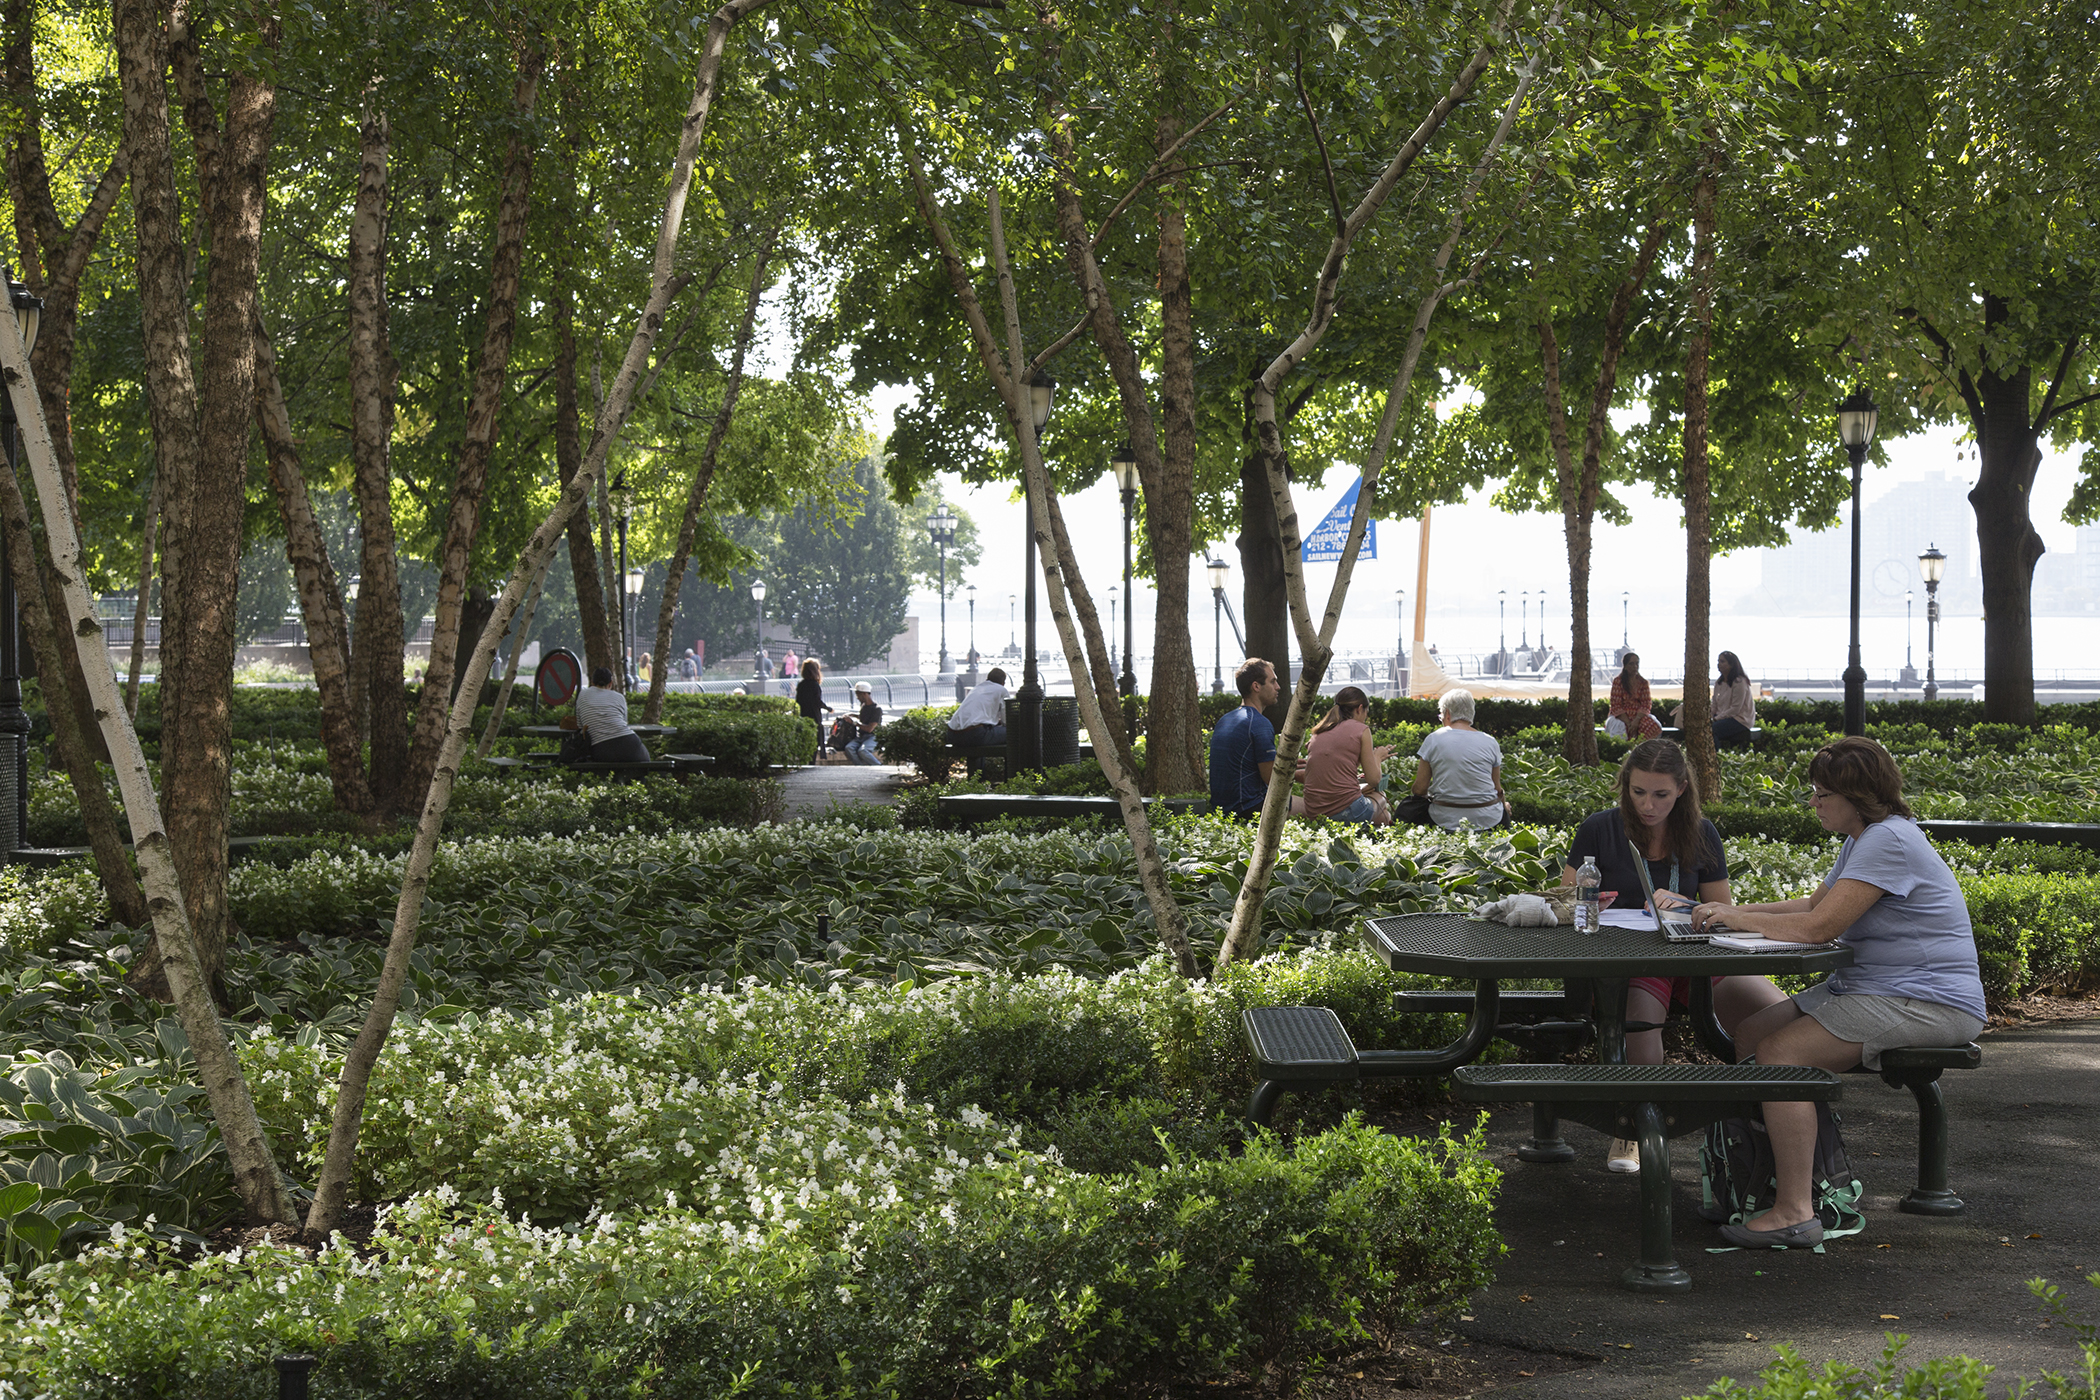 Freelancers work outdoors in Waterfront Plaza adjacent to Brookfield Place, New York.